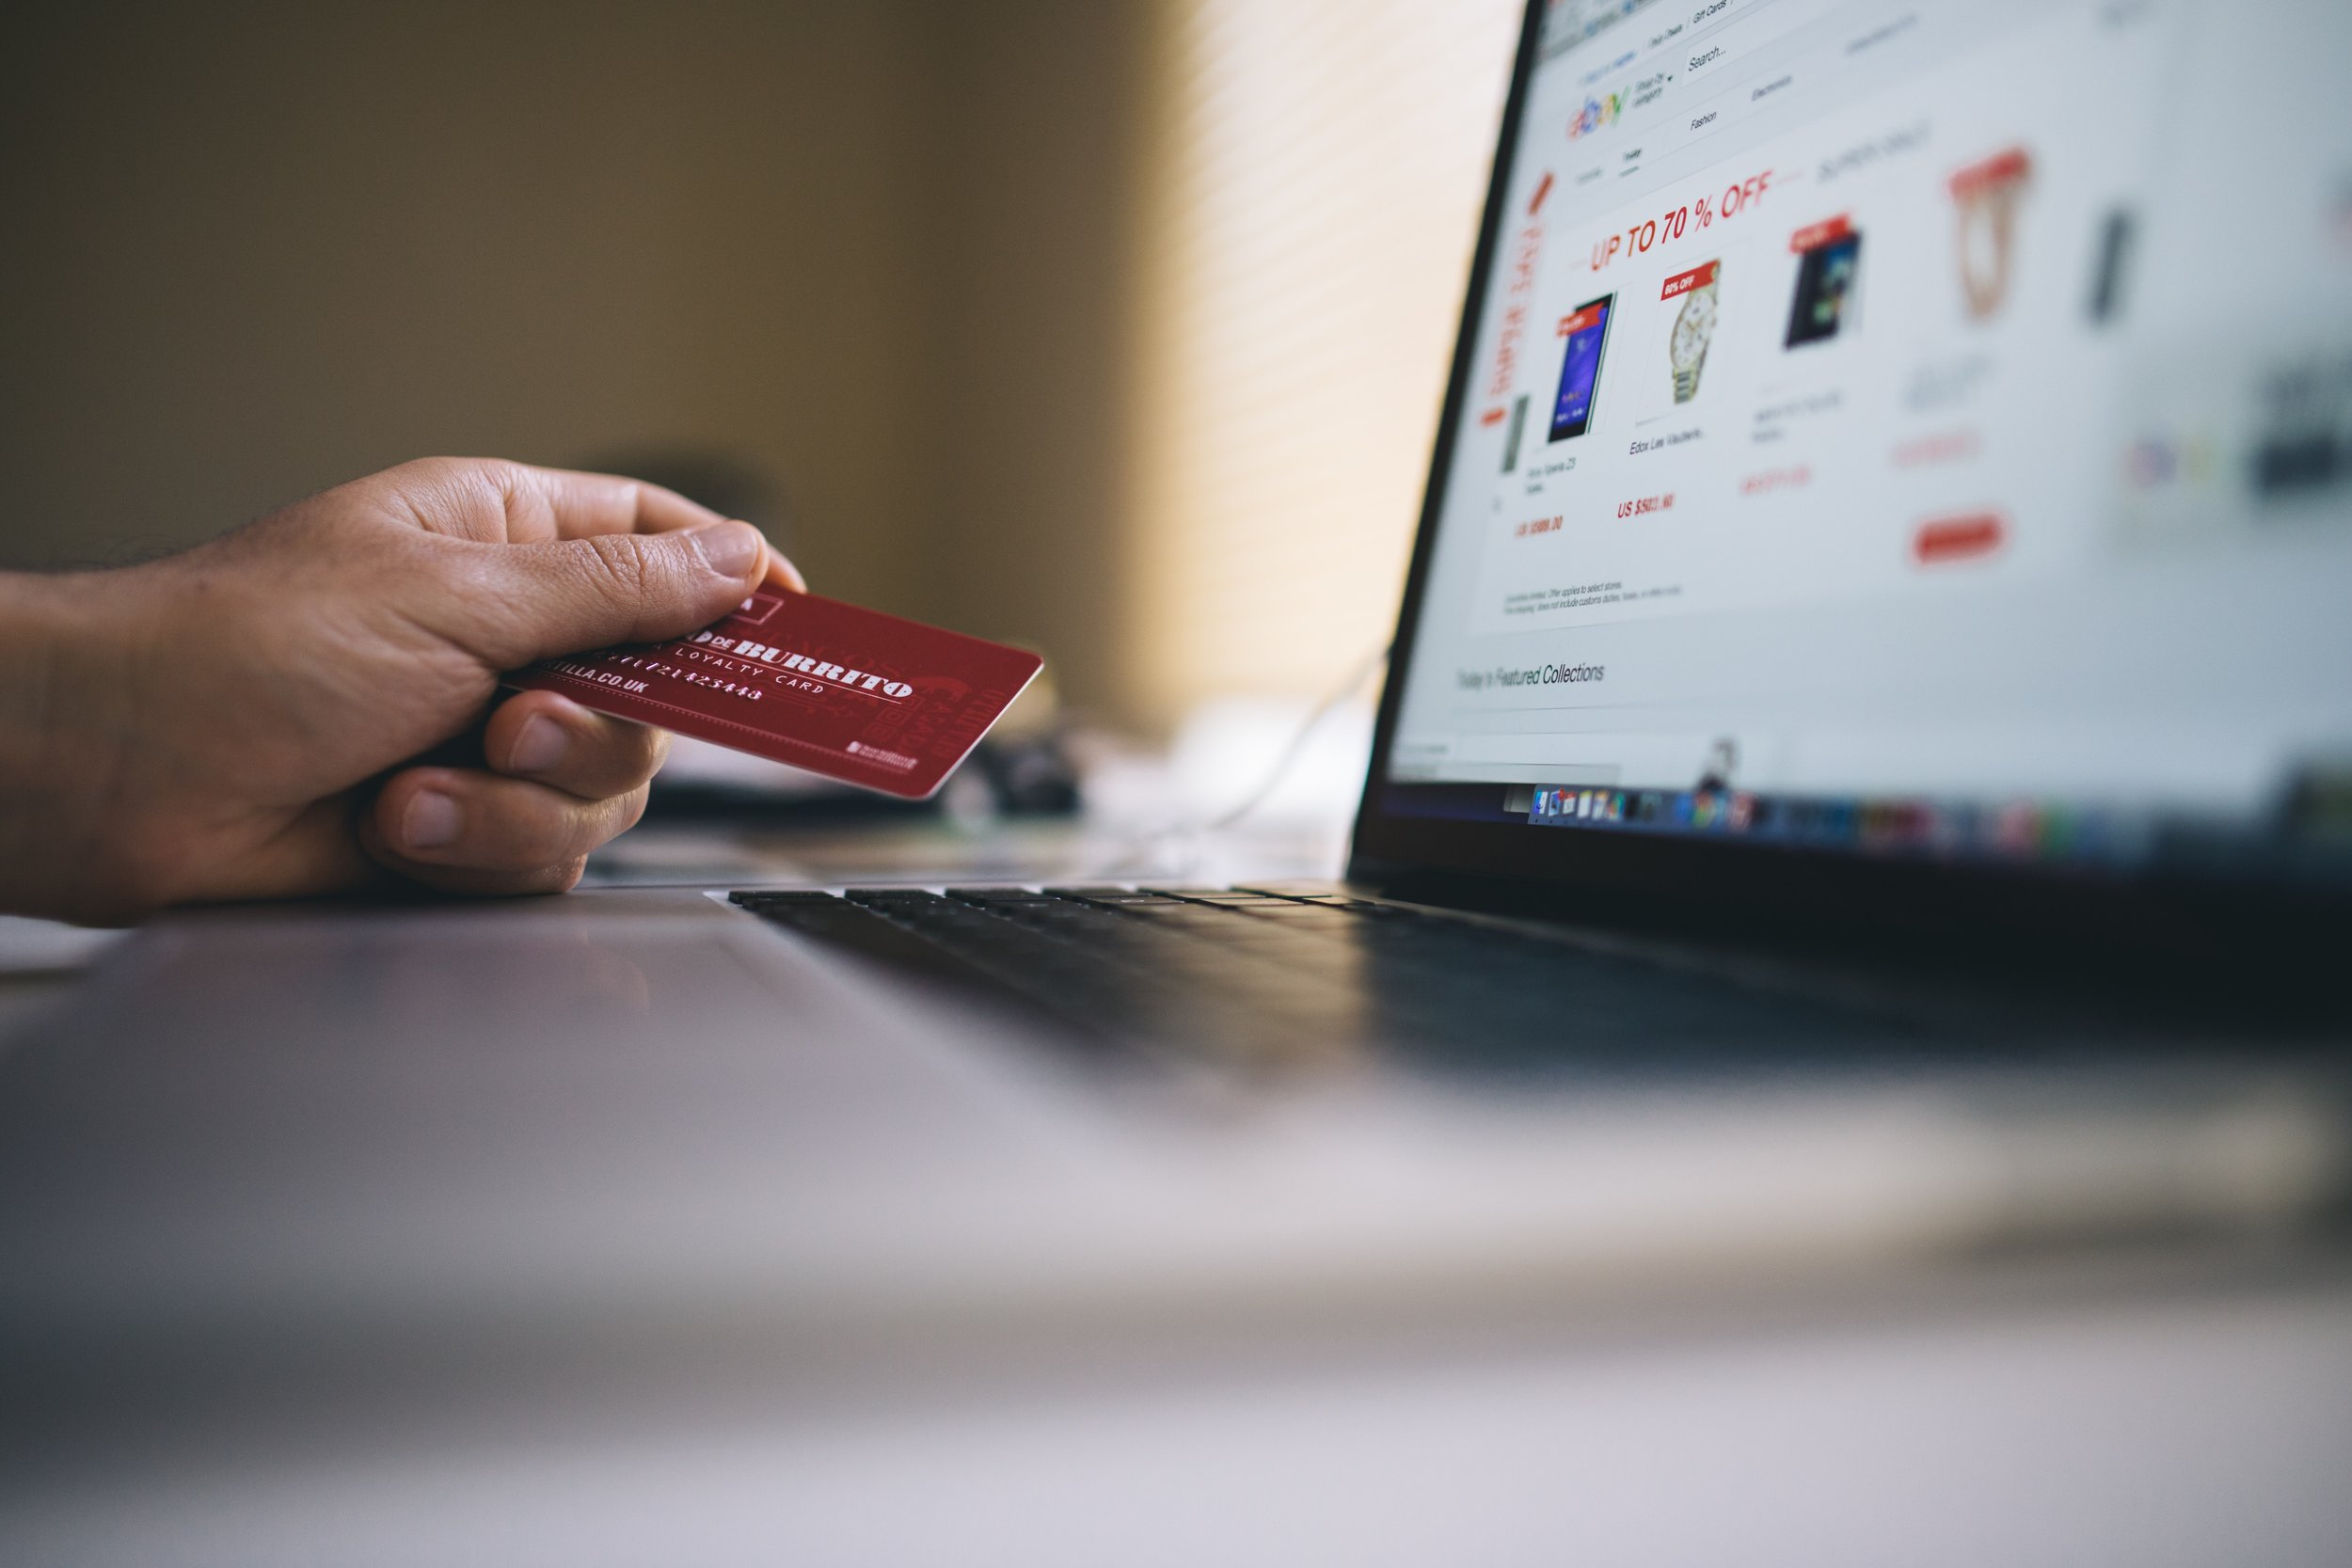 A person holds a physical debit card while shopping online